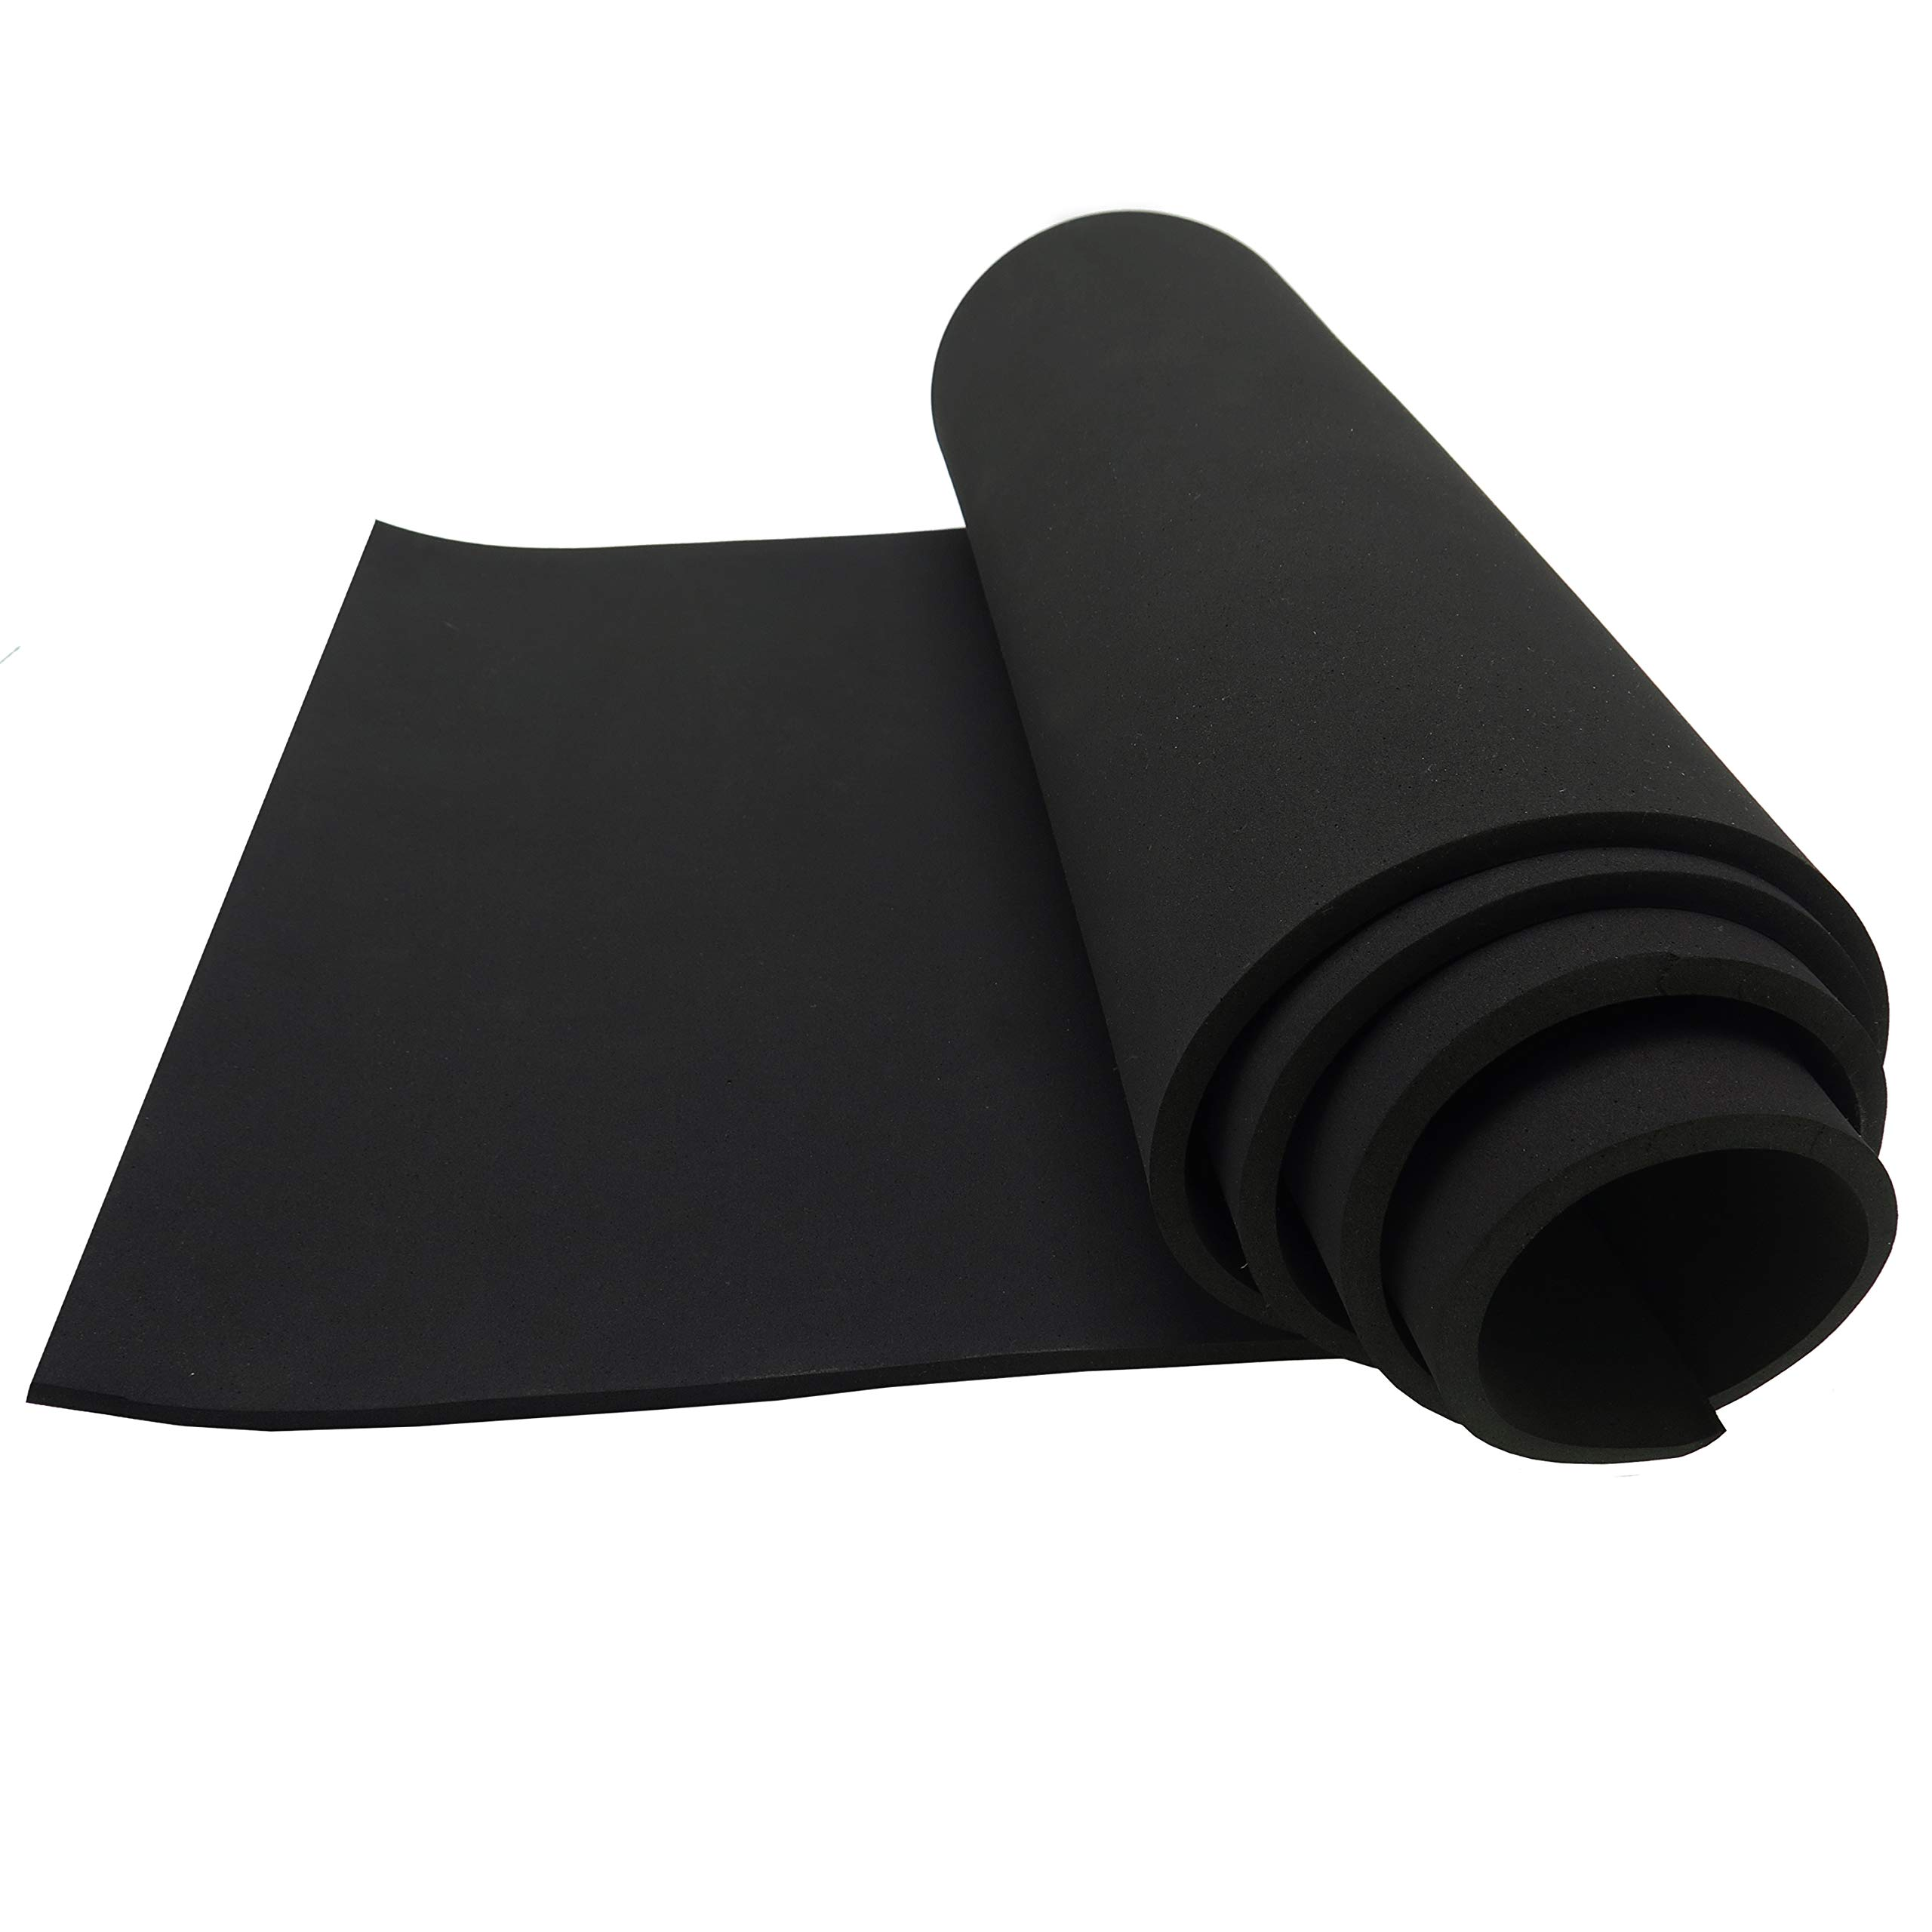 d872050be76 Amazon.com: Neoprene Sponge Foam Rubber Sheet Roll - 15in x 60in (1/4in  Thick): Industrial & Scientific